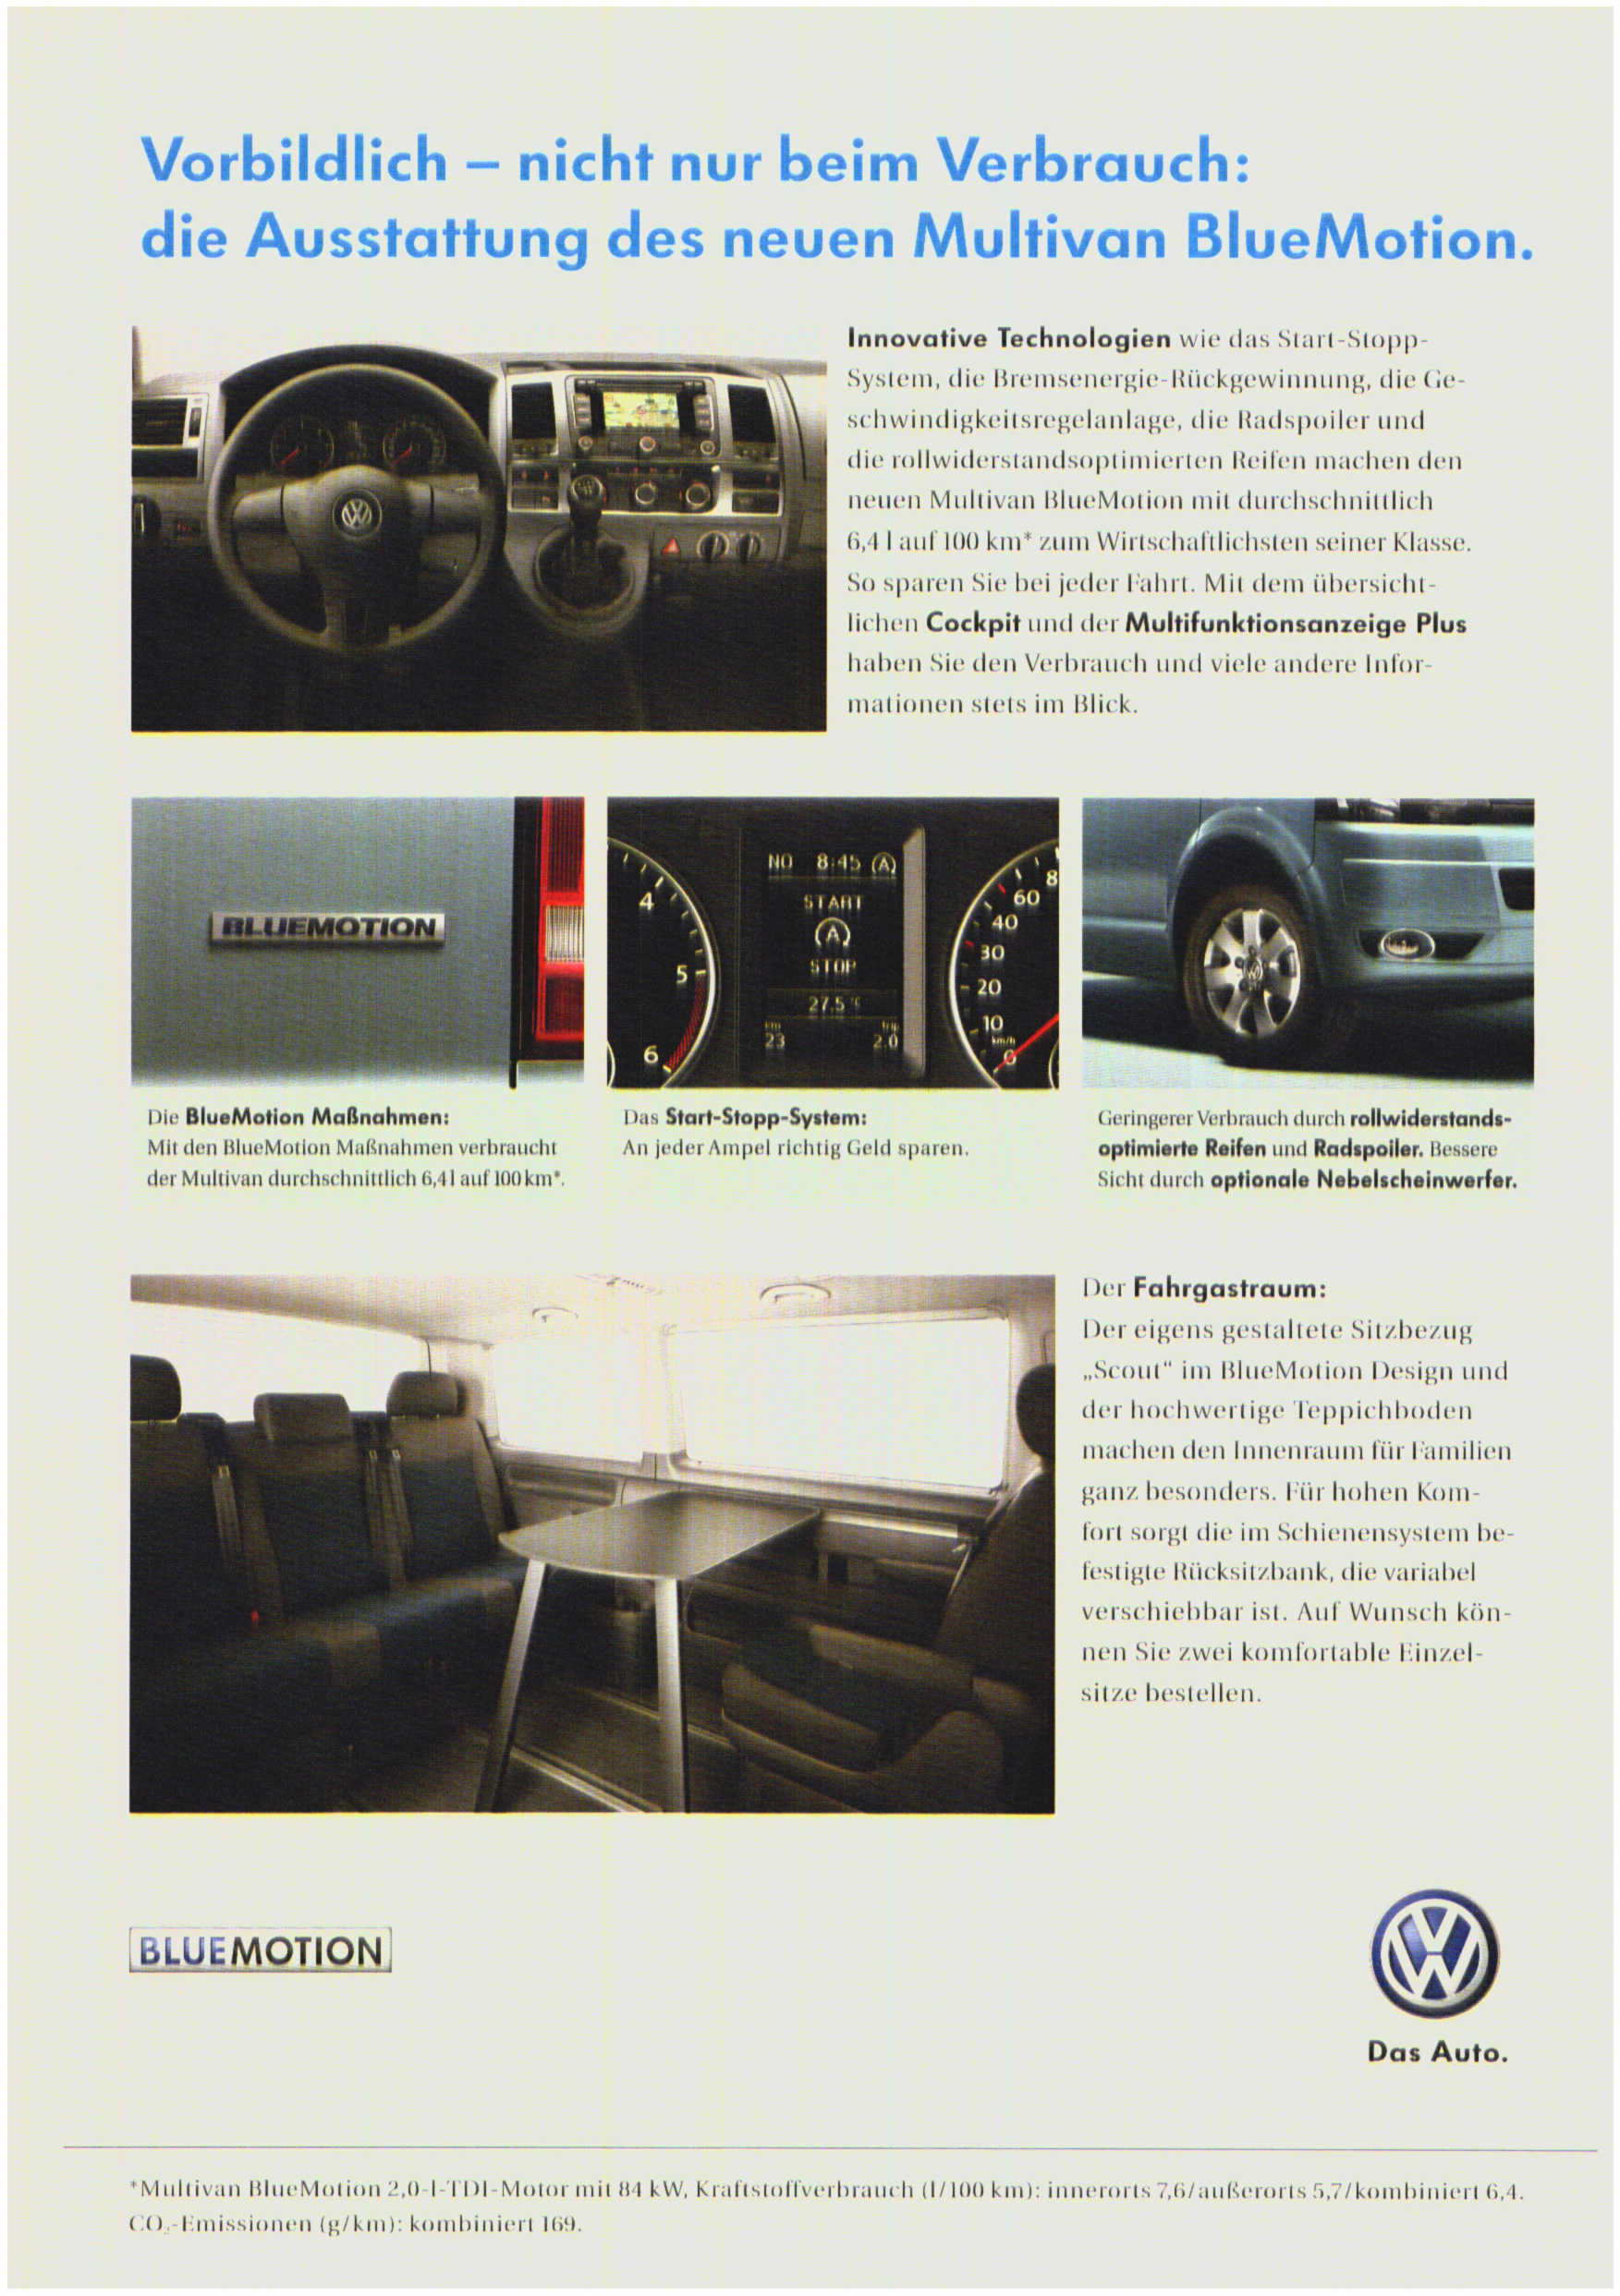 VW Multivan BlueMotion image #7